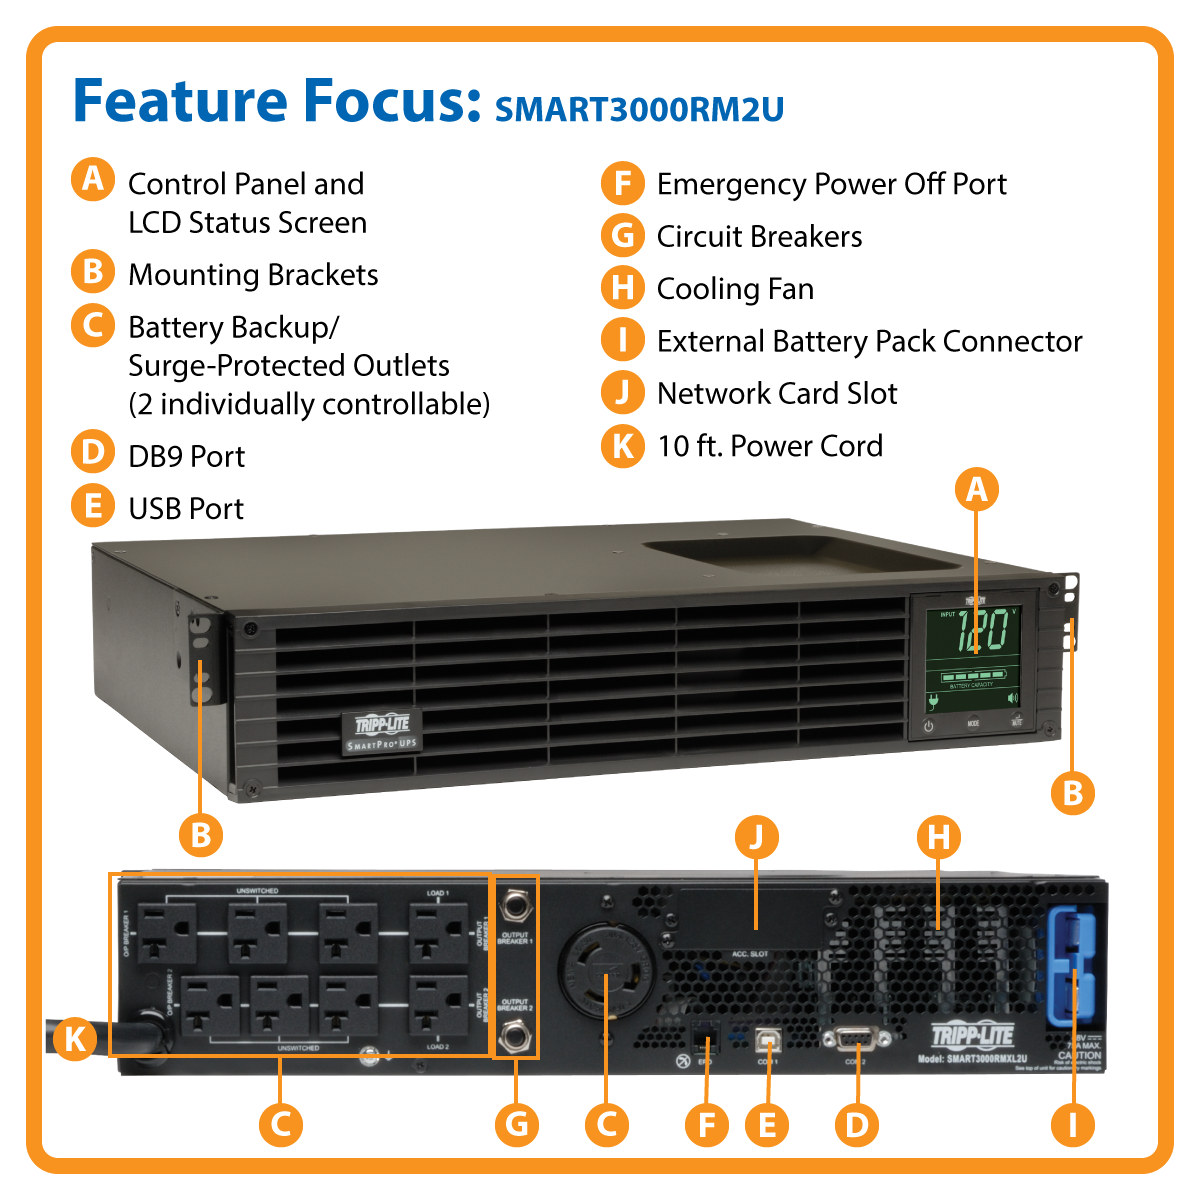 Intcomex Premiere Distributor Of A Wide Range Computer Products Lcd Projector Multifunction Controller Circuit Diagram Control Media